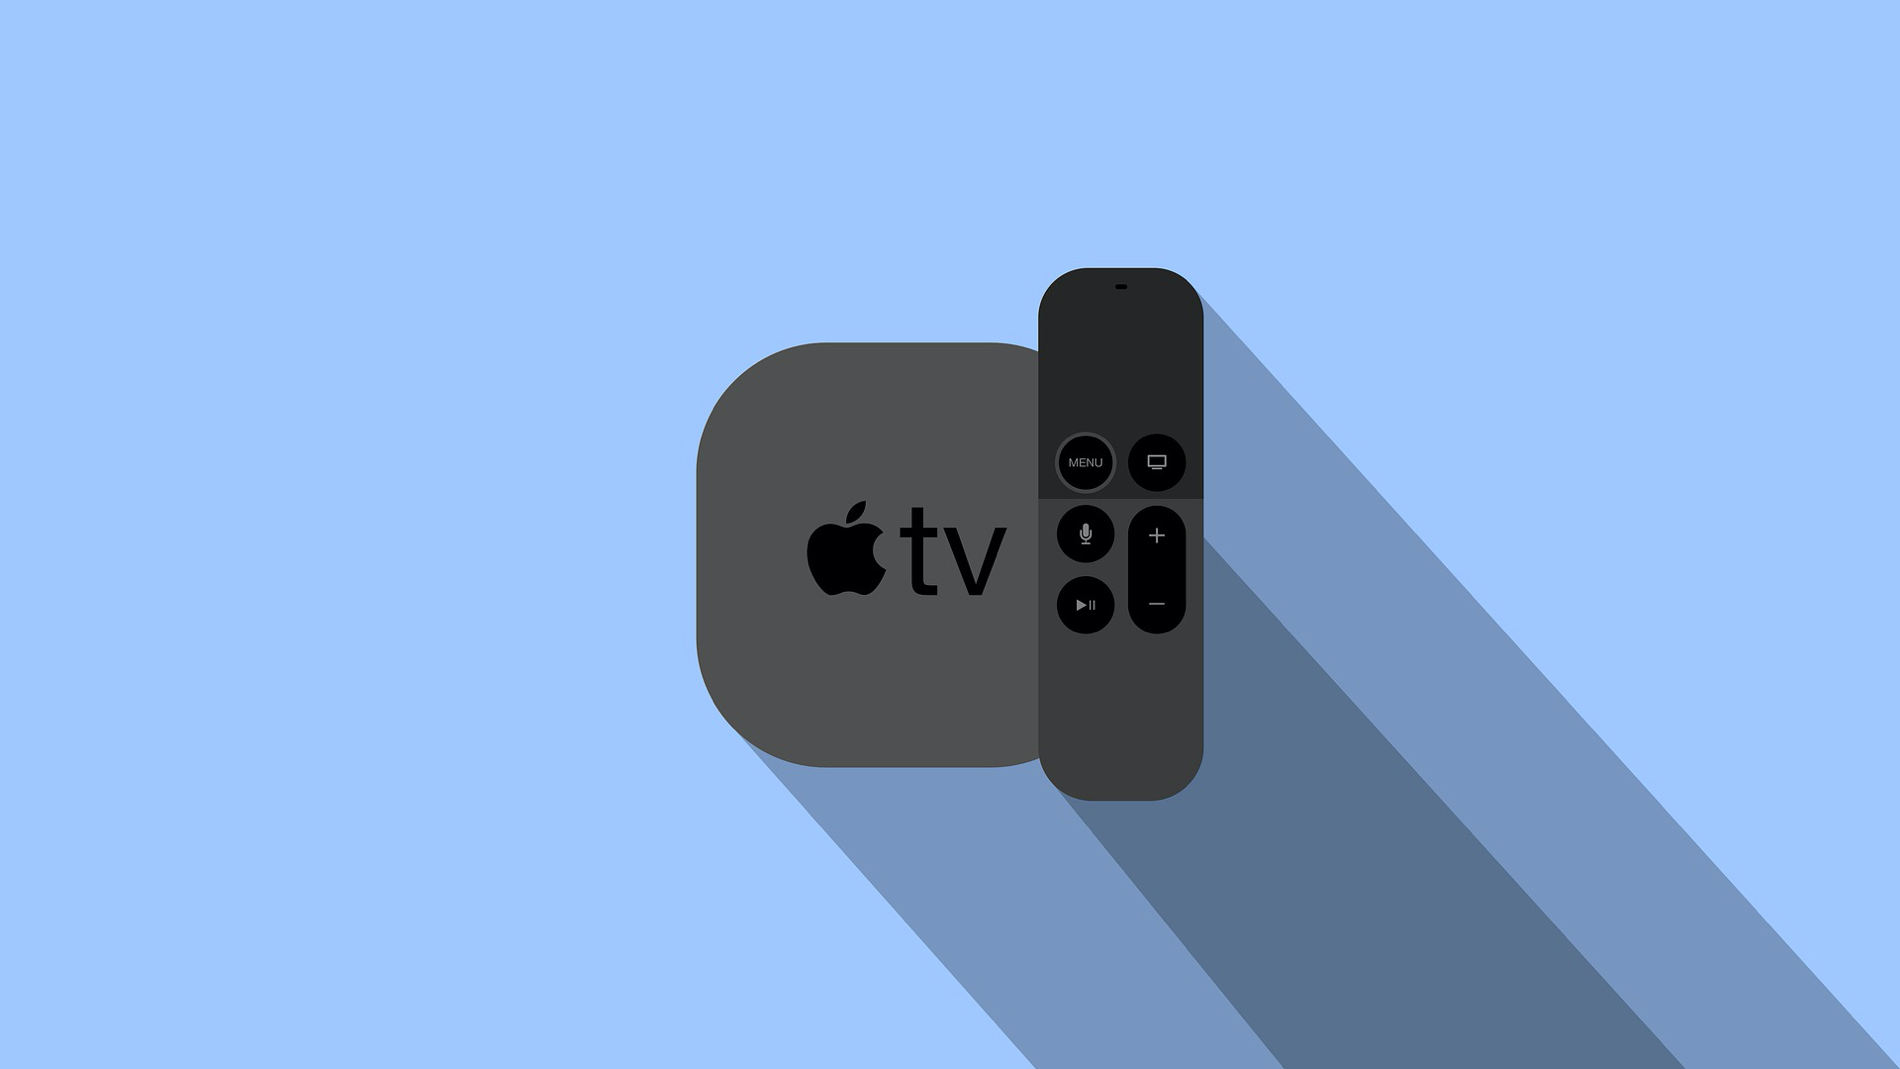 Apple TV and Siri Remote from Pixabay